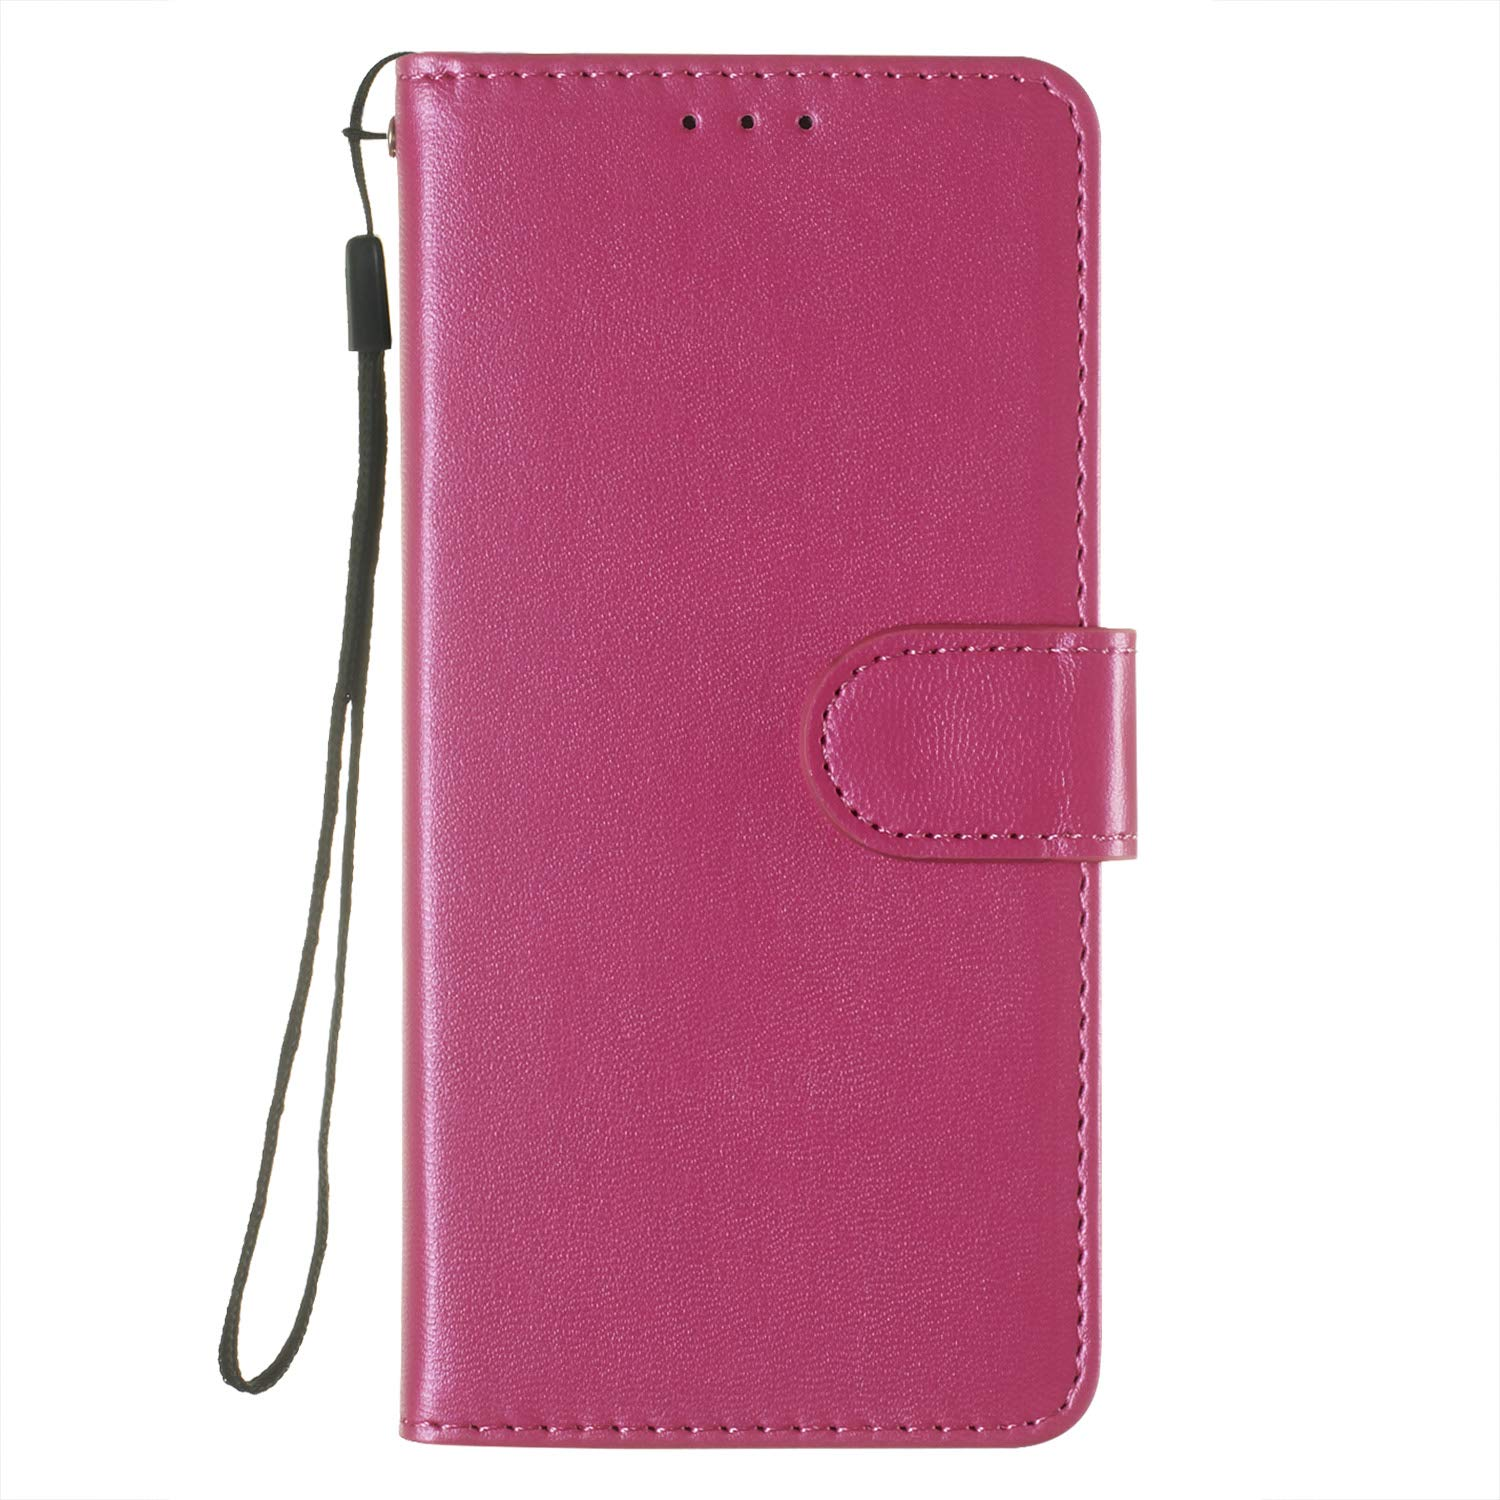 Lomogo Sony Xperia L3 Case Leather Wallet Case with Kickstand Card Holder Shockproof Flip Case Cover for Sony Xperia L3 LOYHU250593 L3